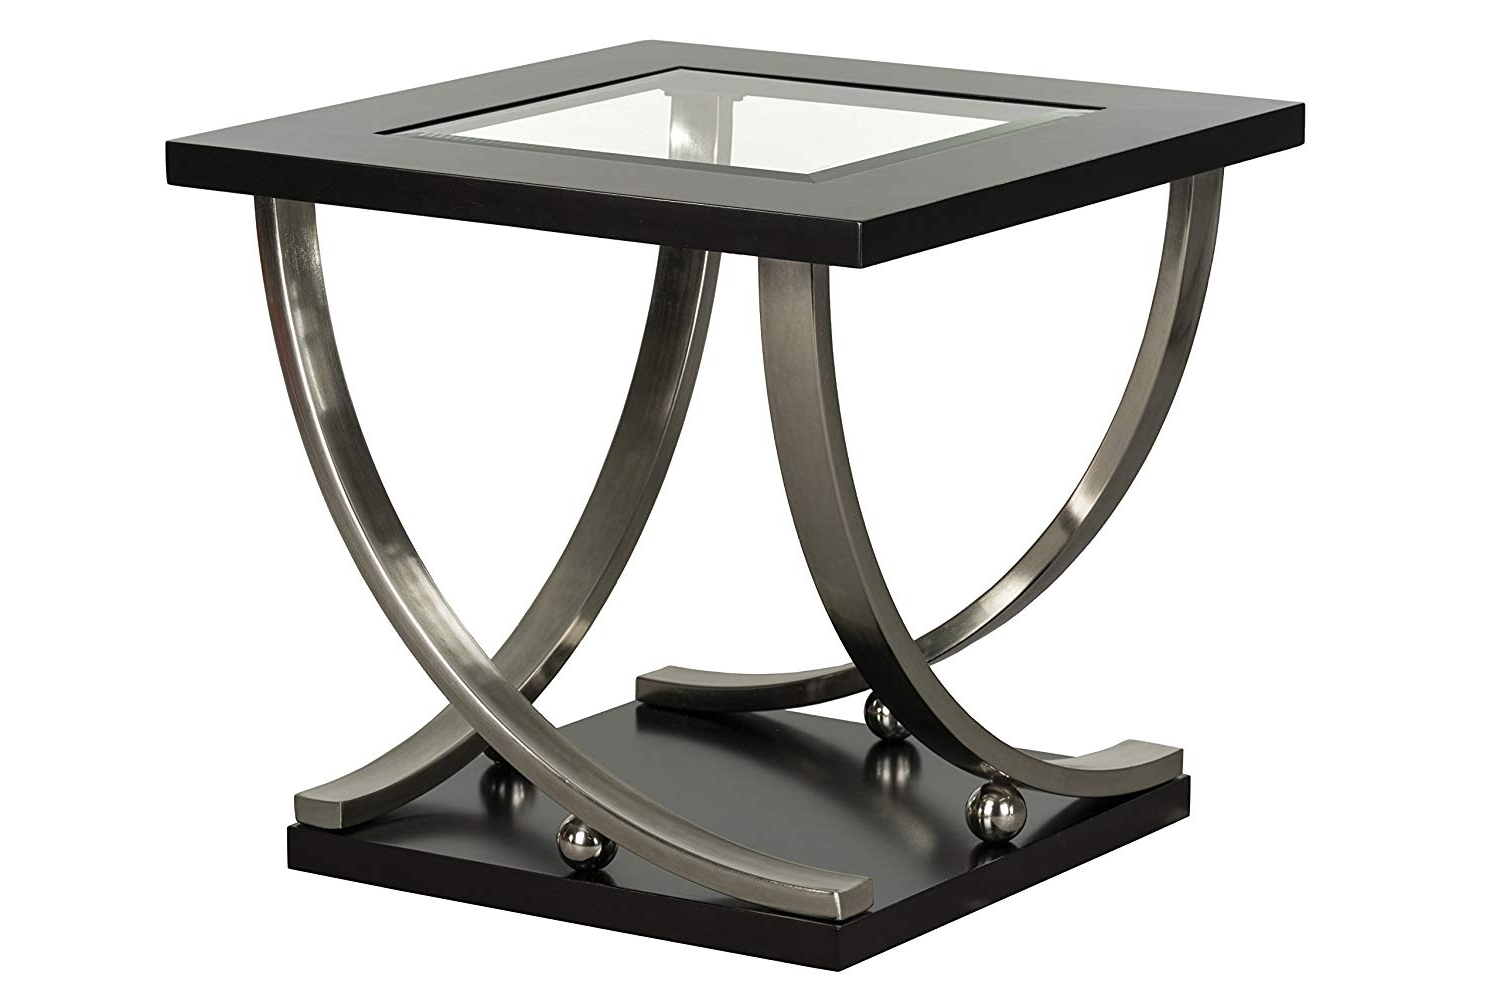 Ina Matte Black 60 Inch Counter Tables With Frosted Glass Inside Famous Amazon: Standard Furniture Melrose End Table With Casters, Brown (Gallery 20 of 25)